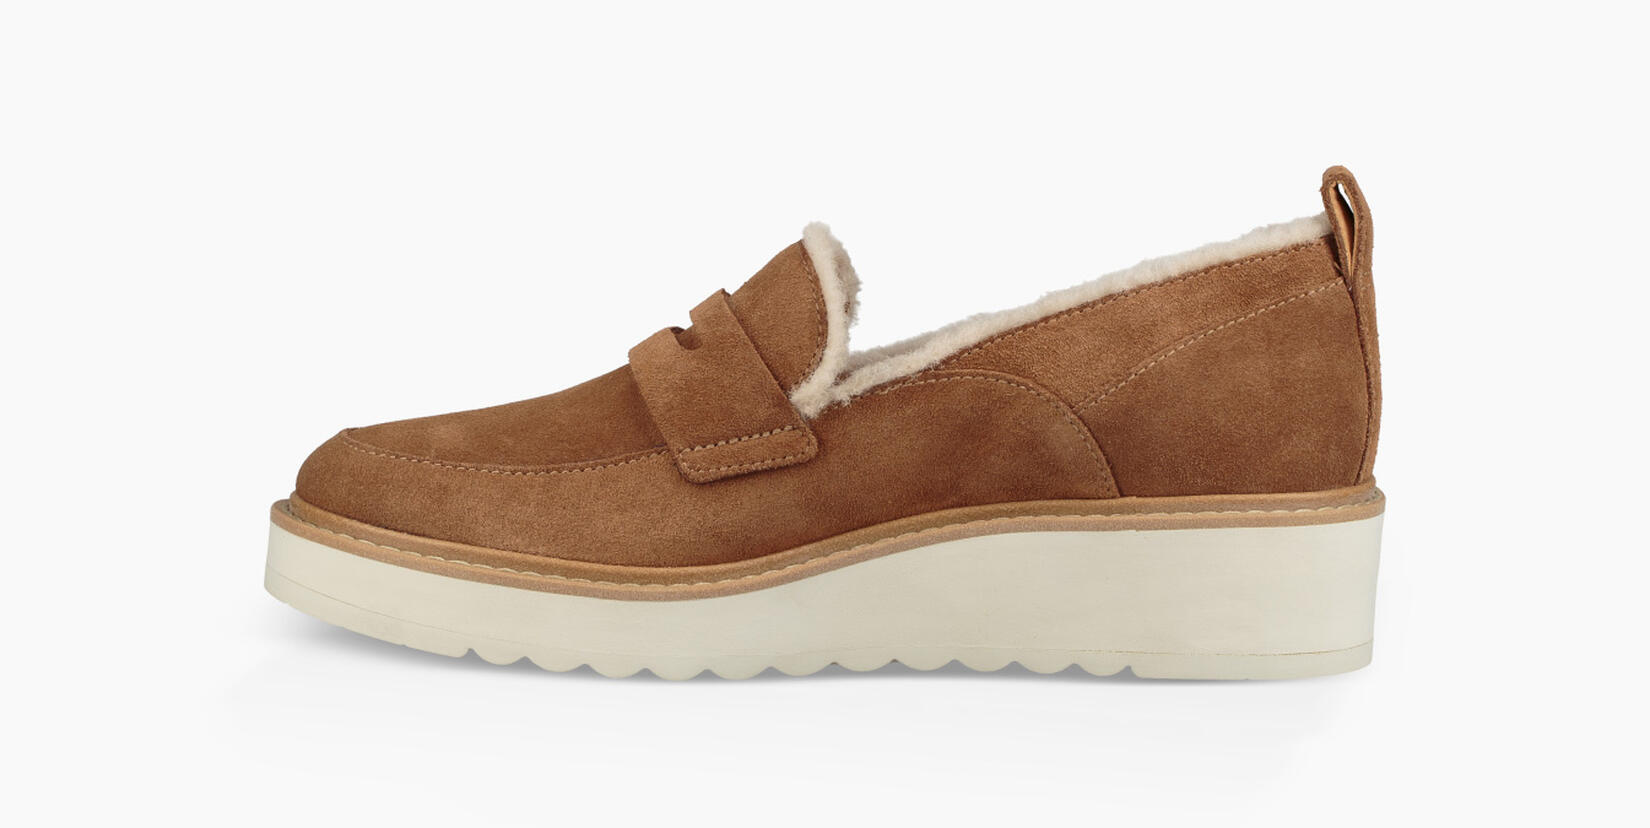 Atwater Spill Seam Loafer